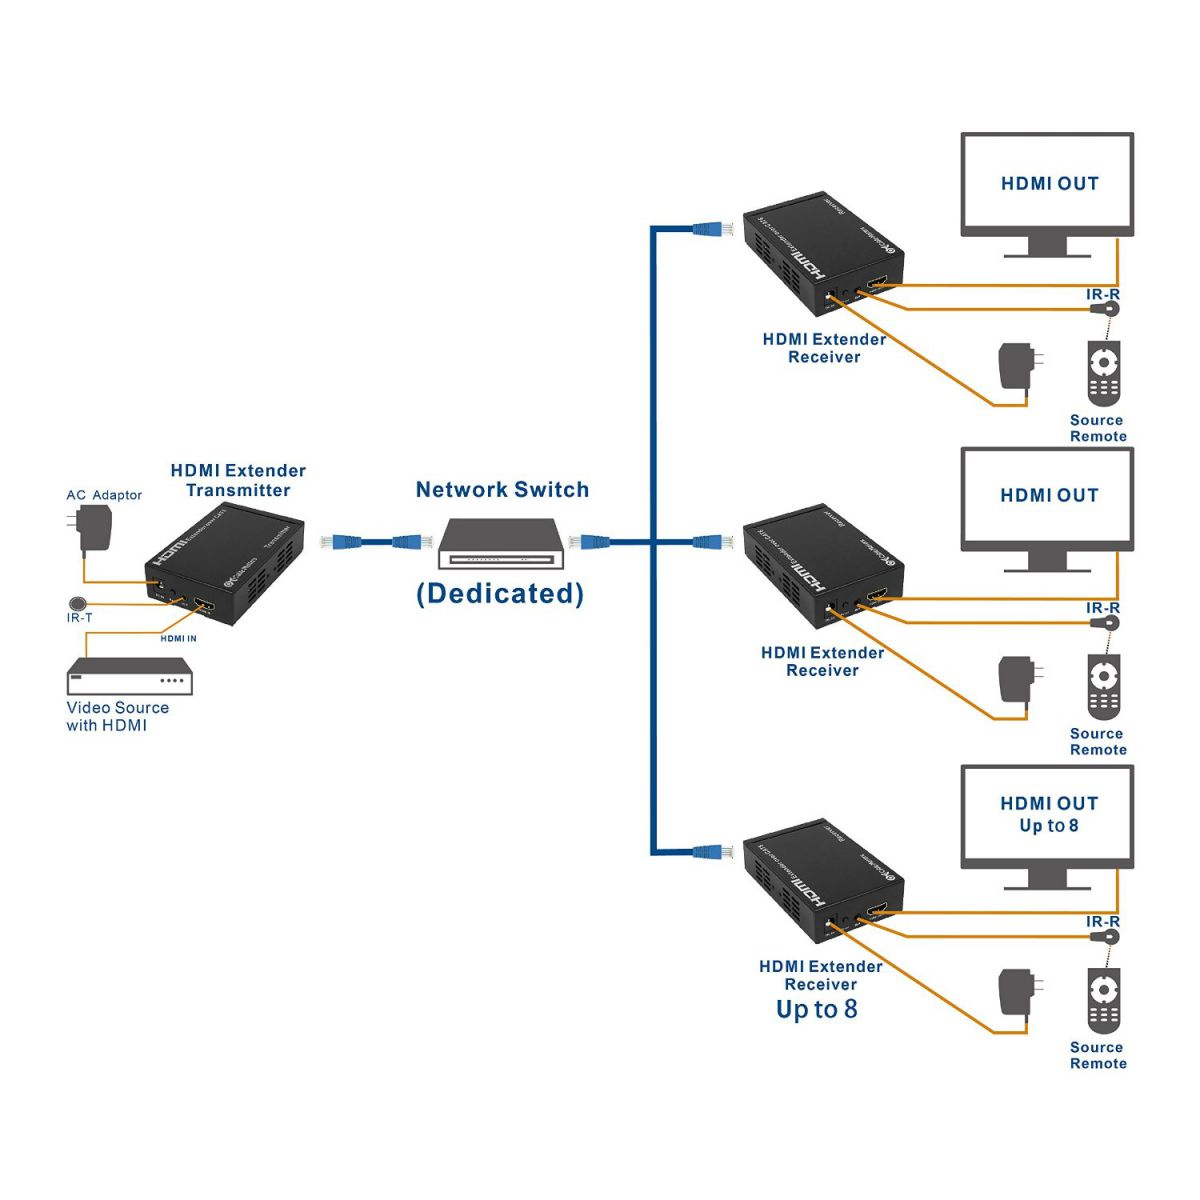 Hdmi Extender Over Single Cat6 Etherent Cable Supporting Tcp Ip Wiring Diagram Problems